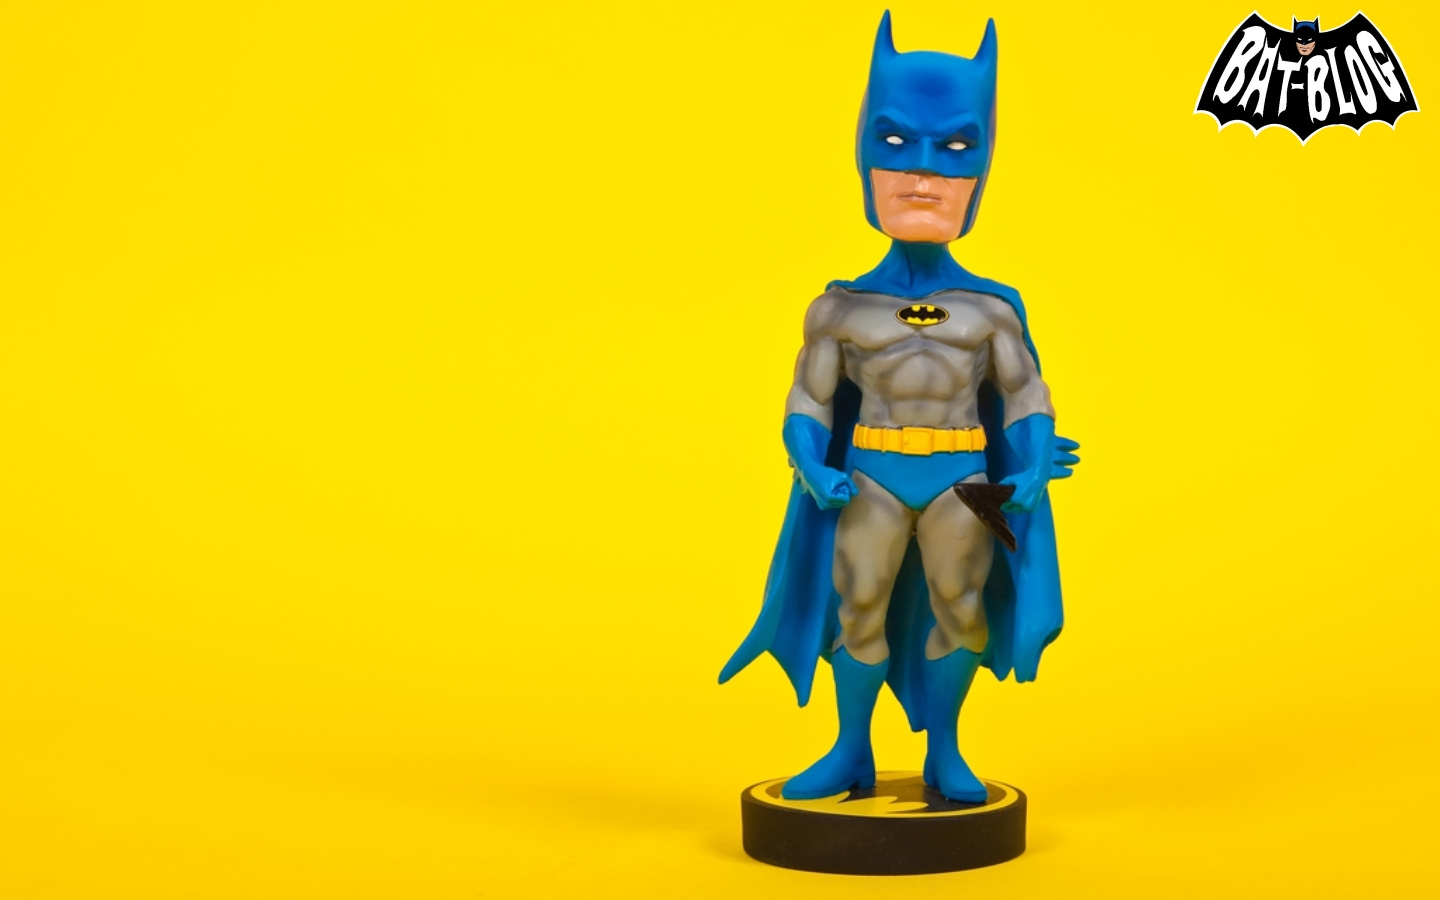 Batman Toys For Kids : Bat batman toys and collectibles wacky